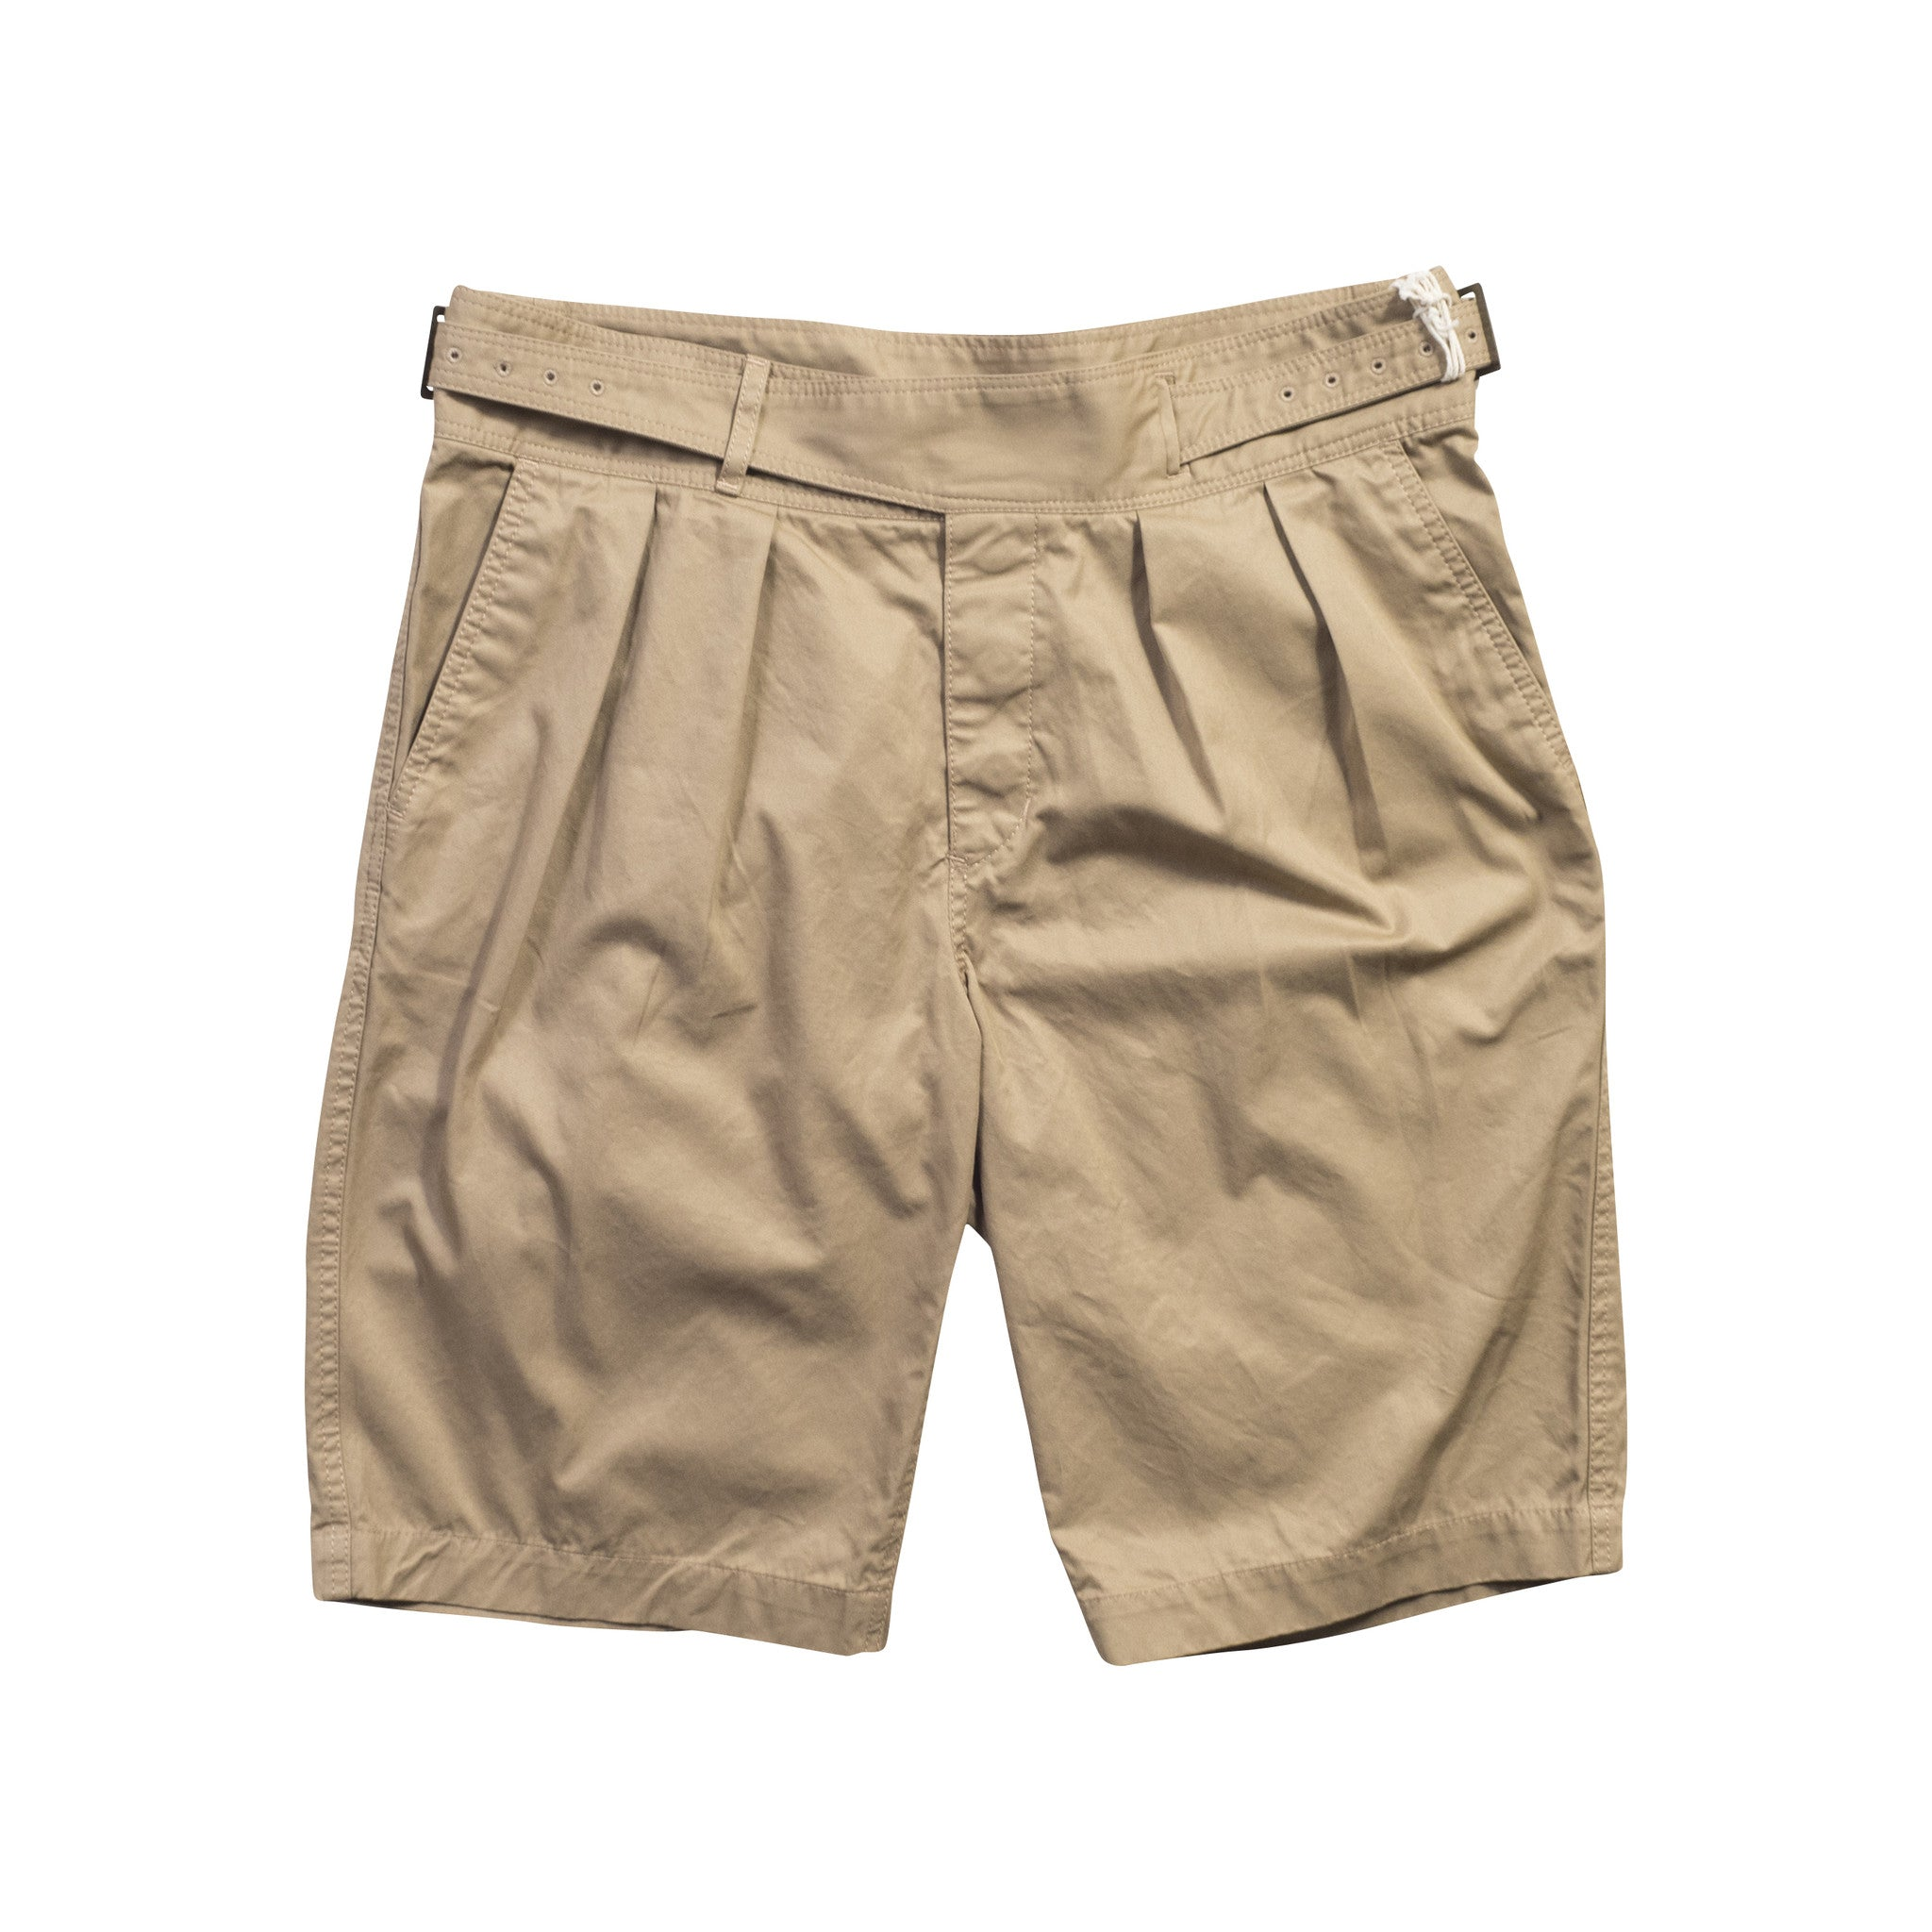 TS_S_-2-IN-PLEAT-GURKHA-SHORTS-BEIGE-FRONT-FLAT-MEYVN-CHICAGO_2048x2048.jpg?v=1462566743